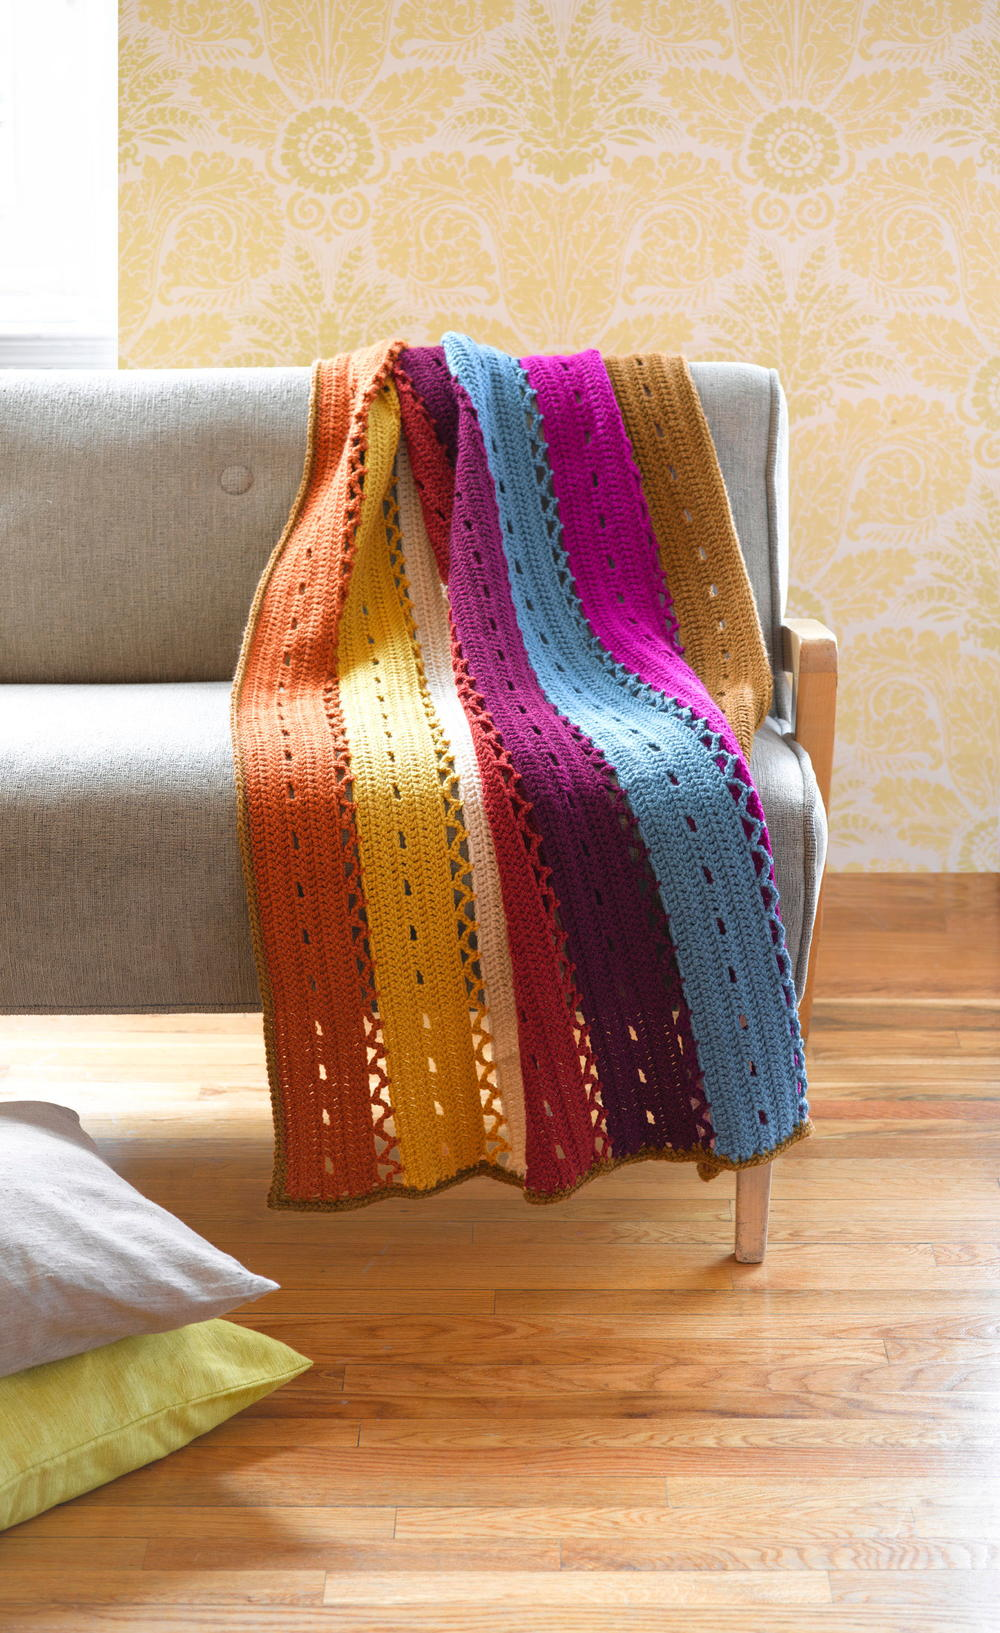 Red Lion Yarn Free Crochet Patterns : Colorful Windchime Afghan FaveCrafts.com